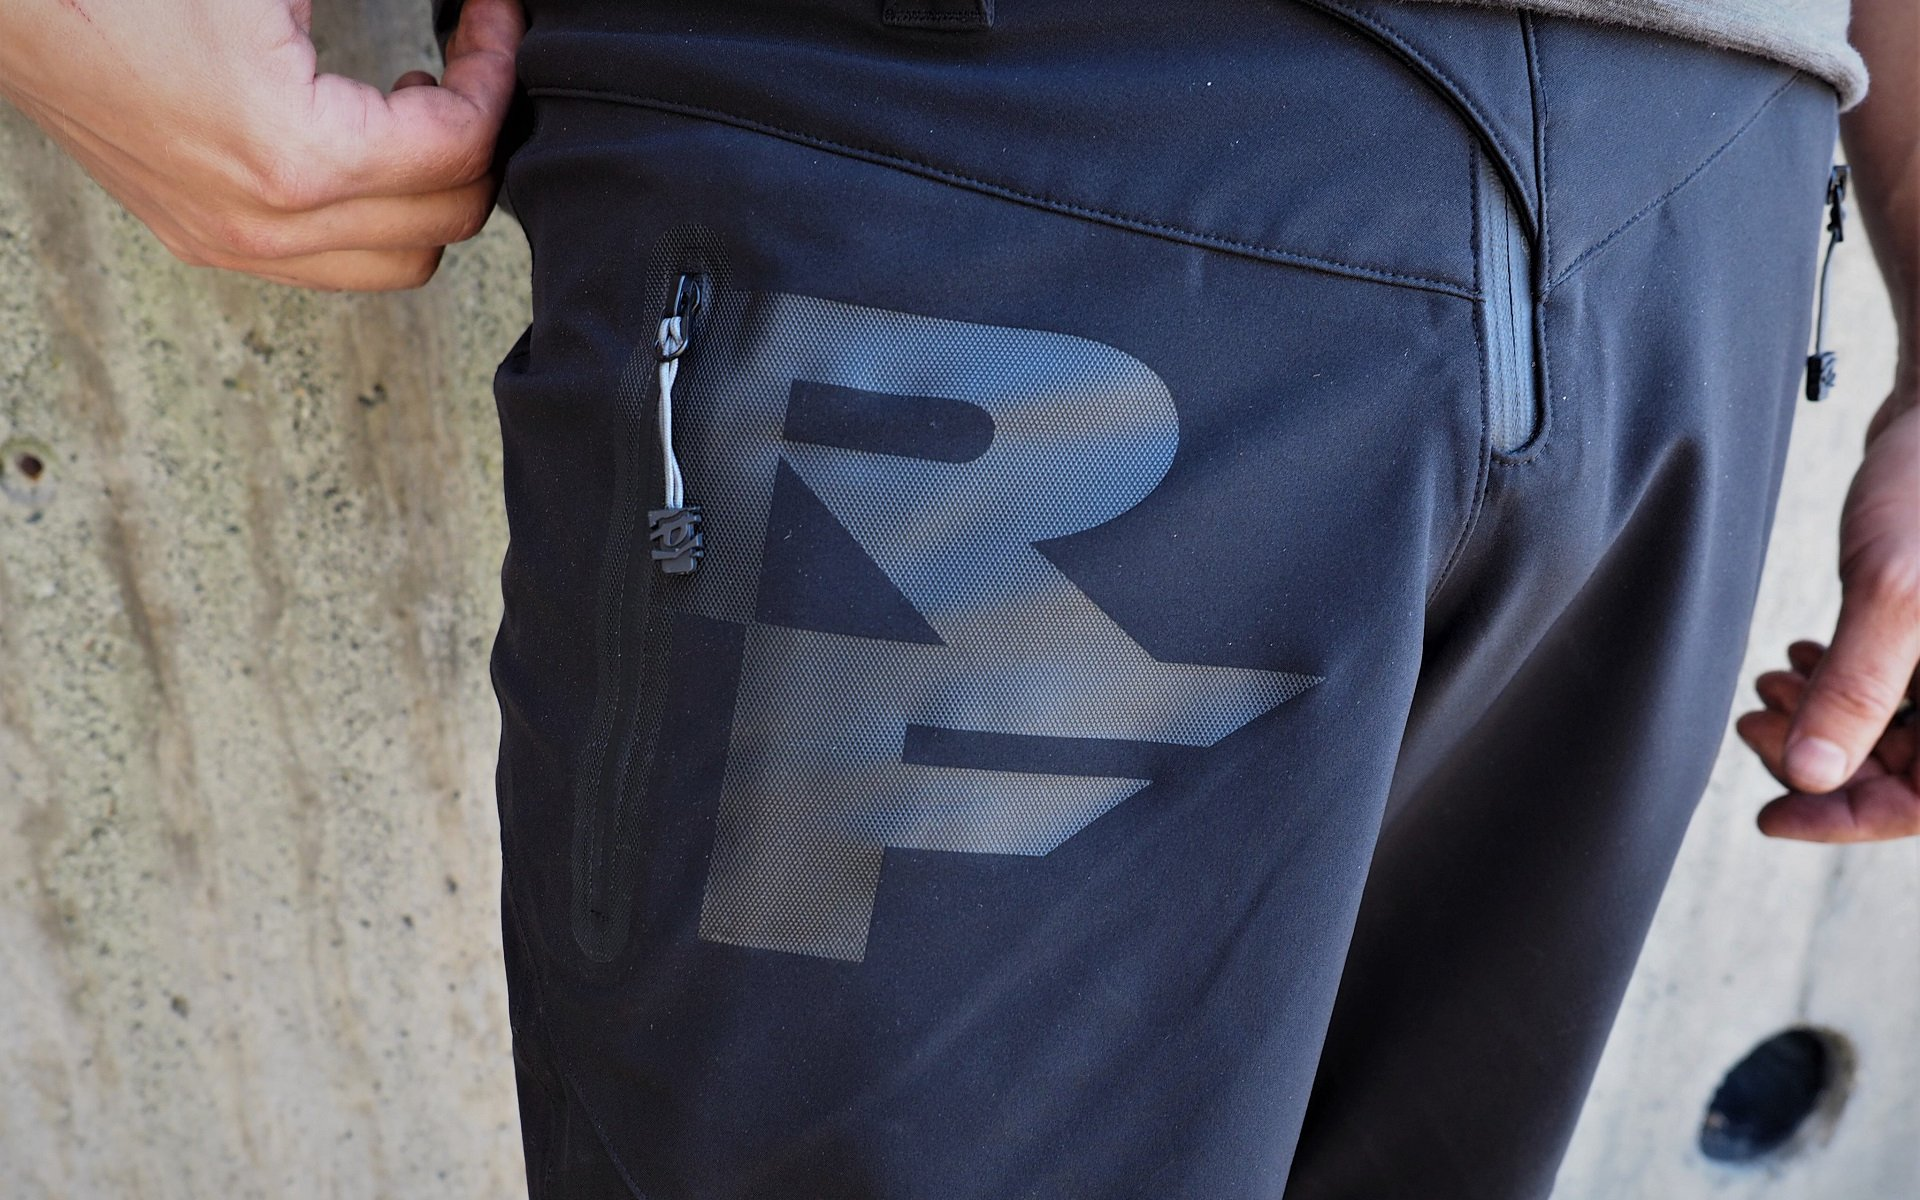 55bab075f Race Face Agent Pants Reviewed